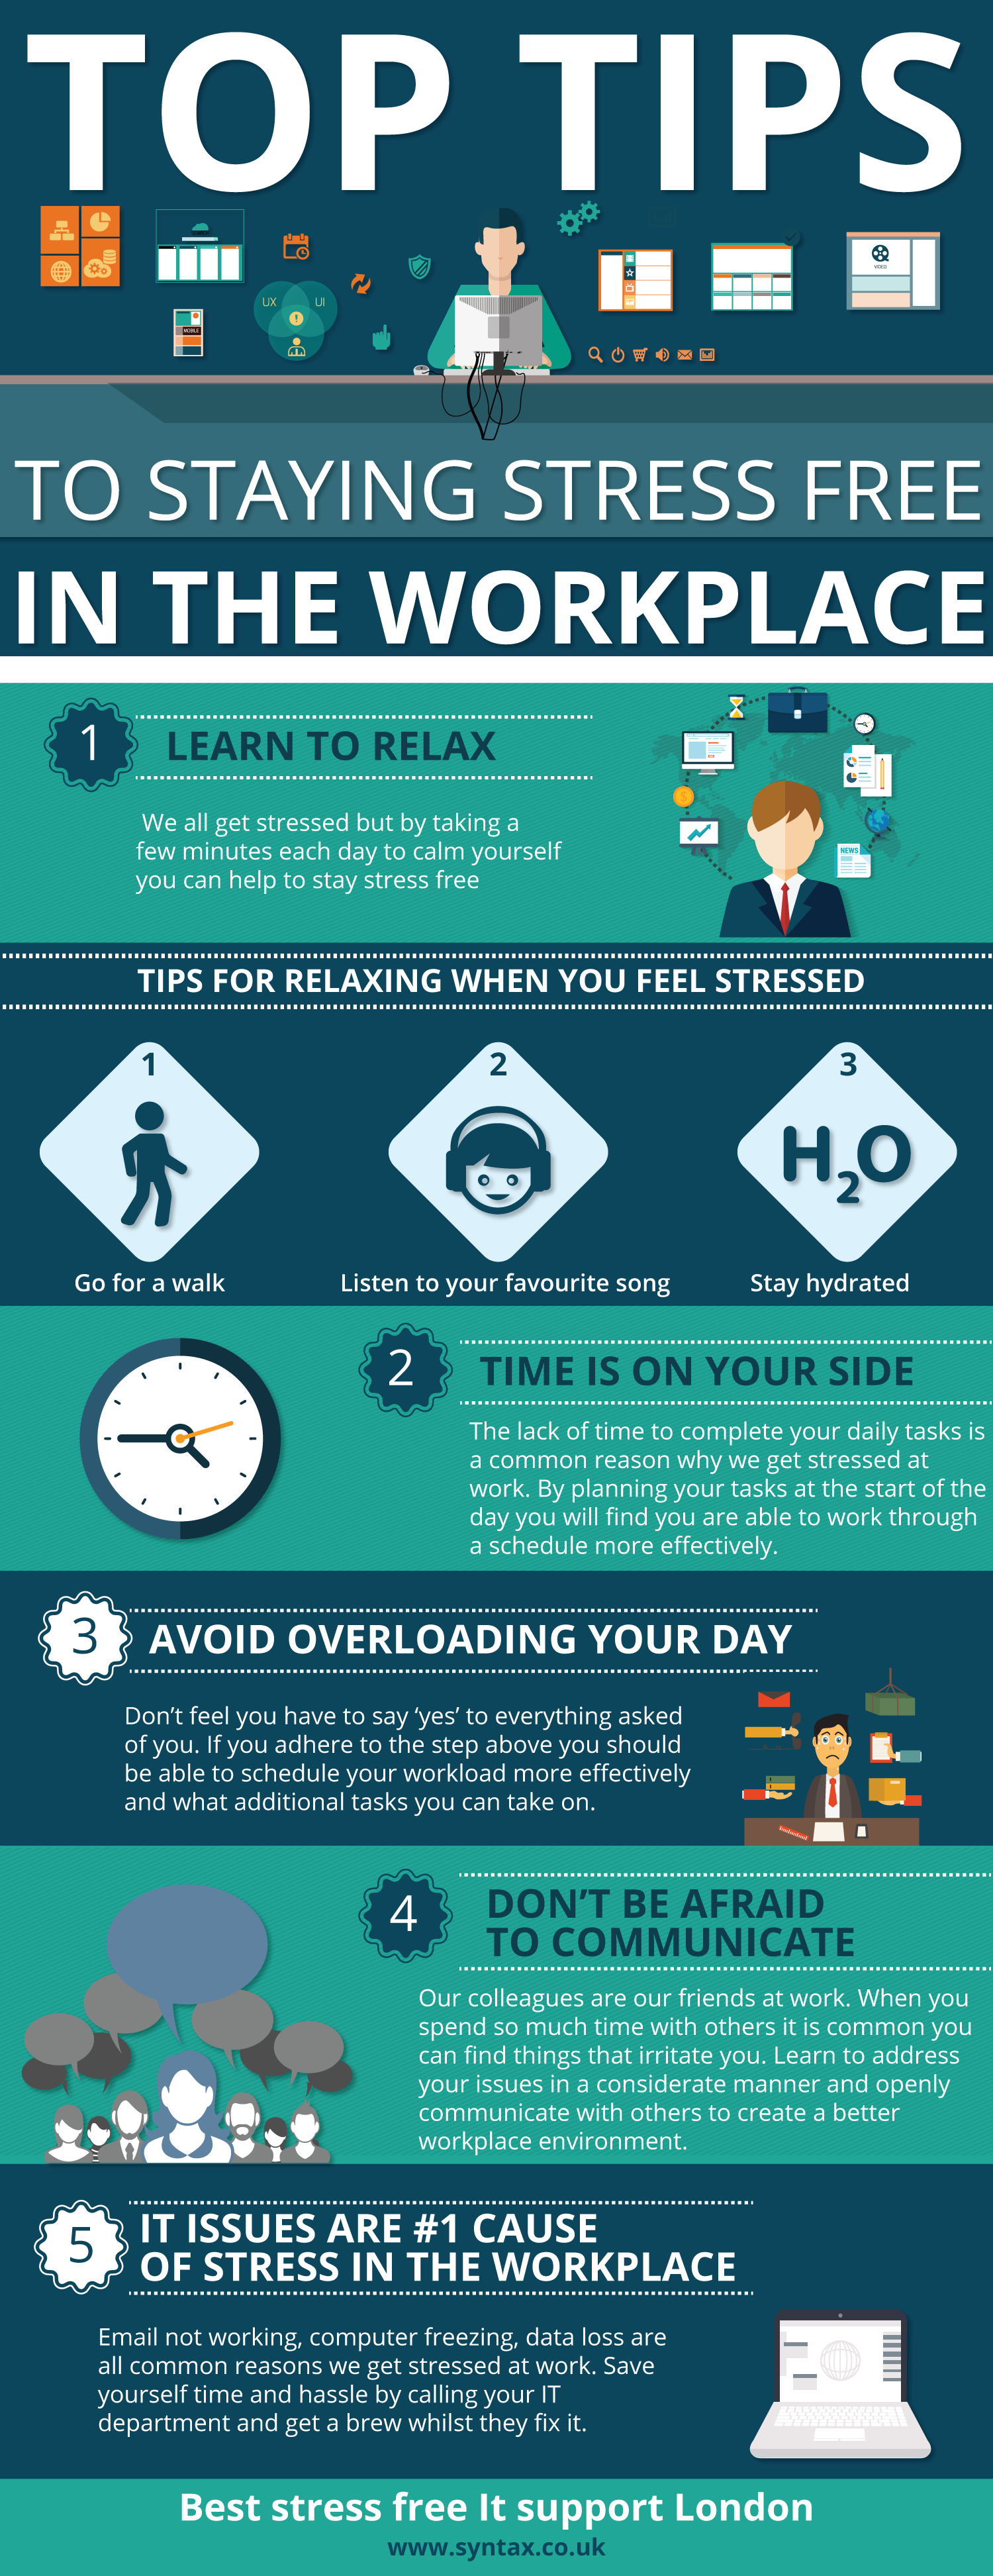 Top Tips To Staying Stress Free In The Work Place How to